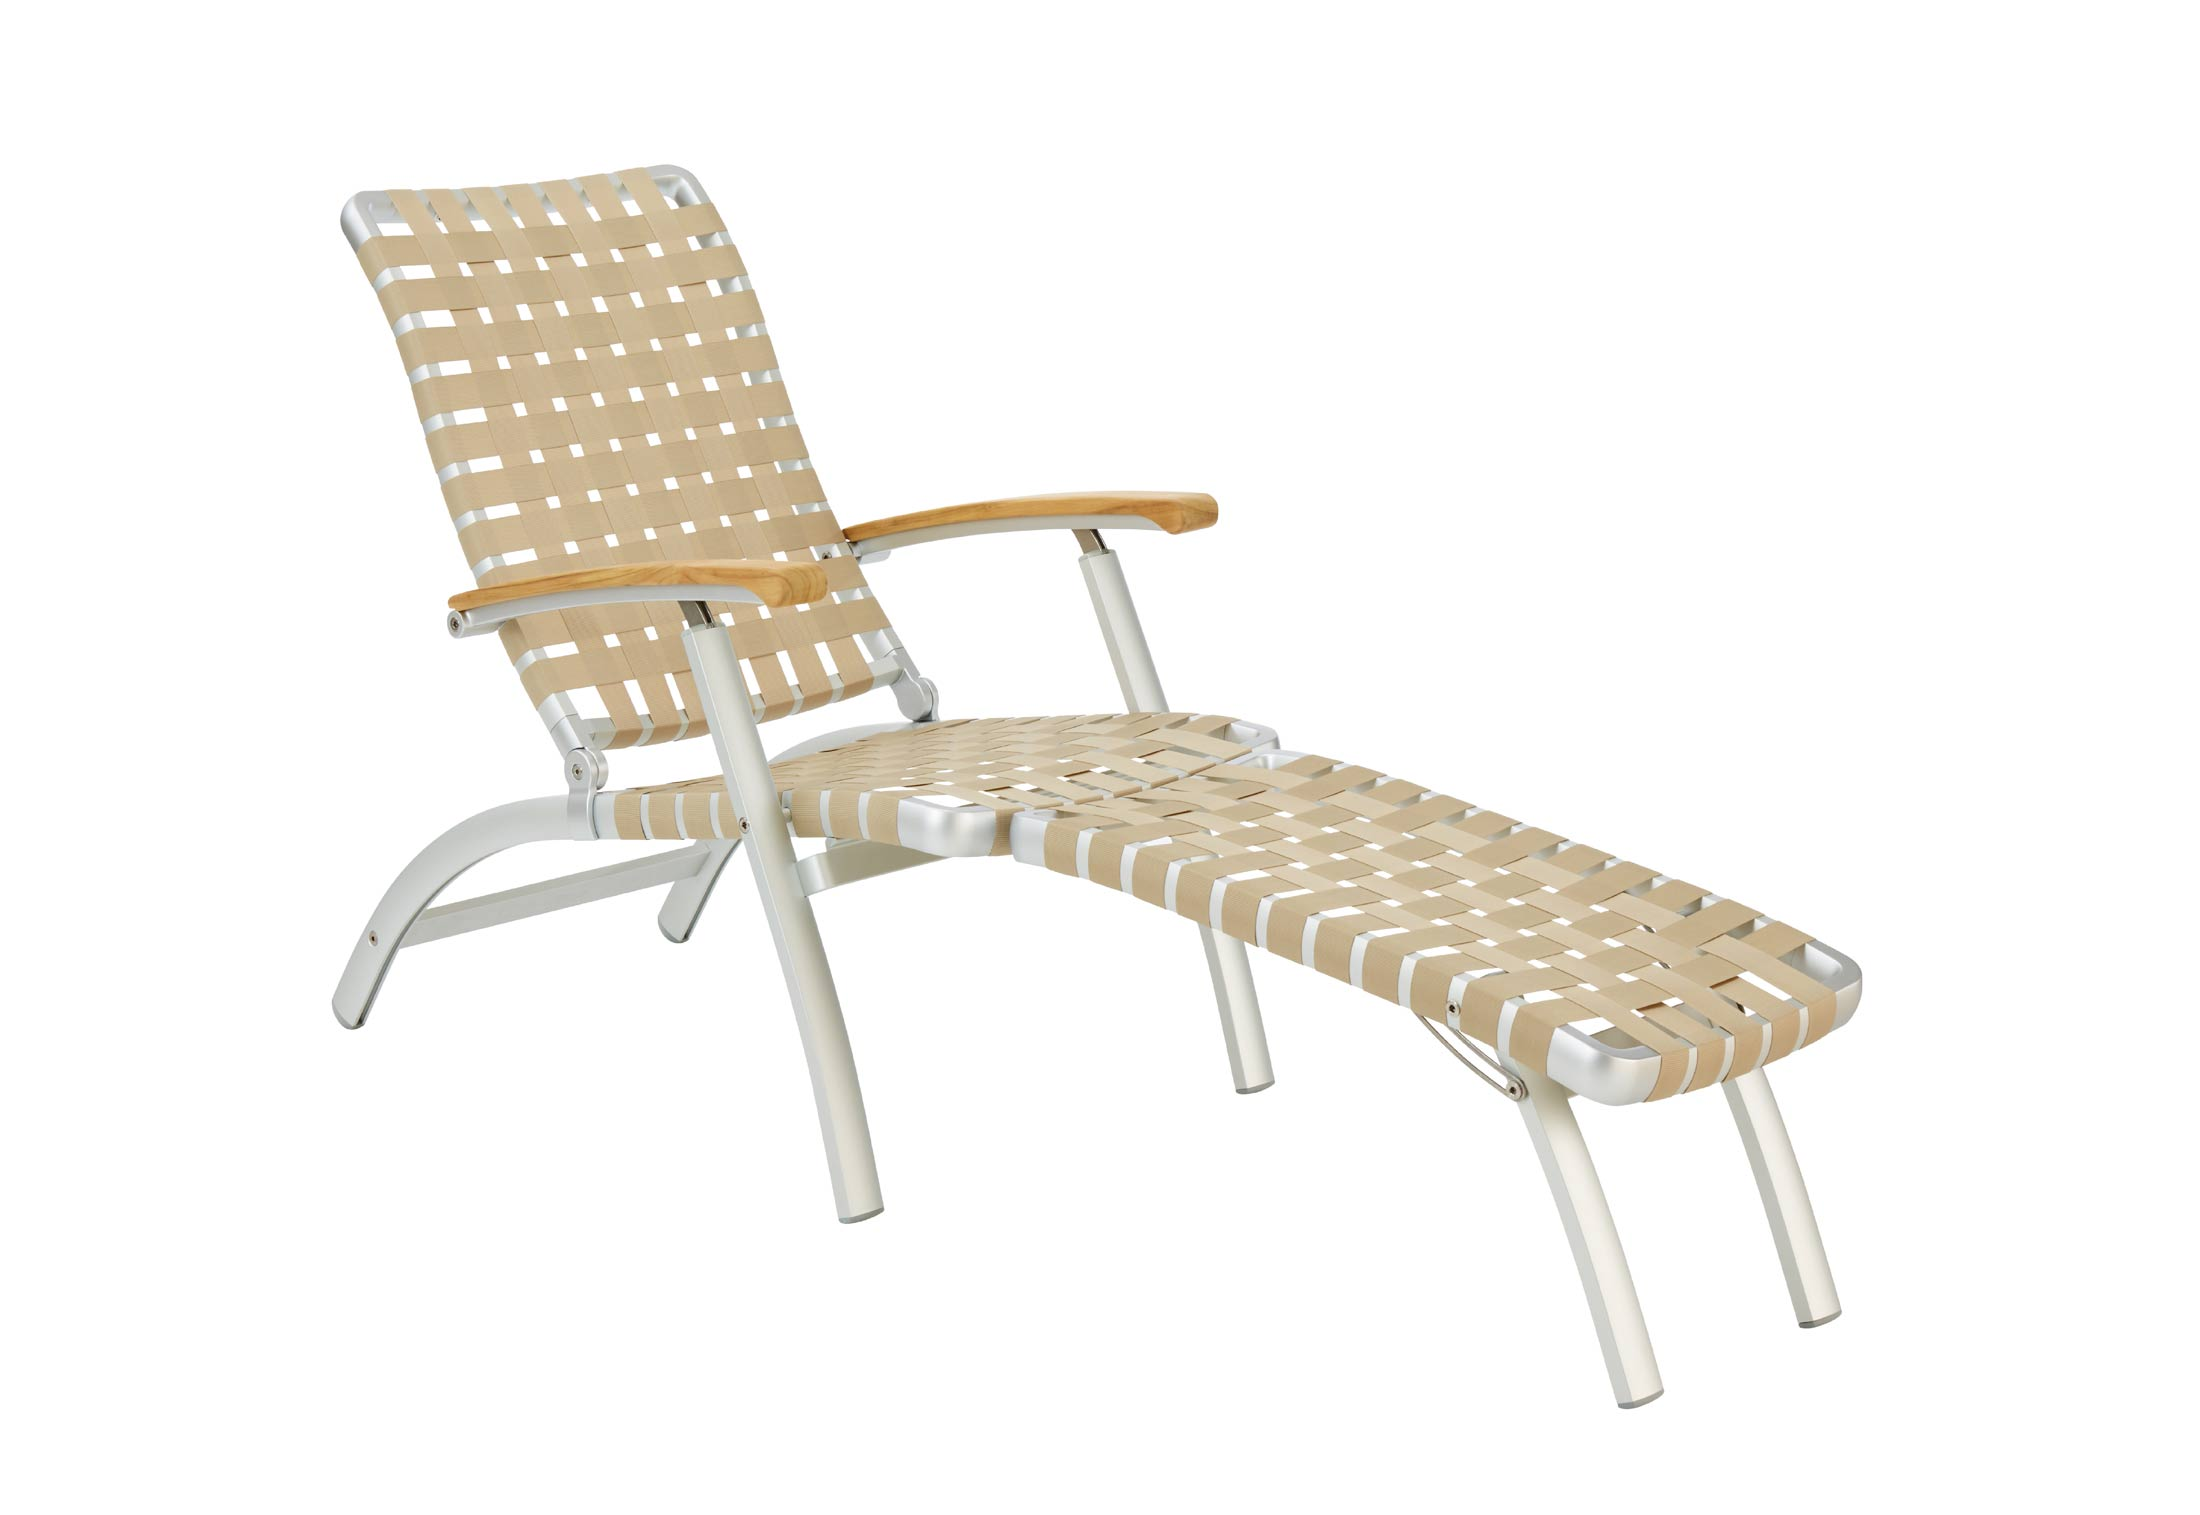 Garpa Liege United States Deck Chair By Garpa Stylepark